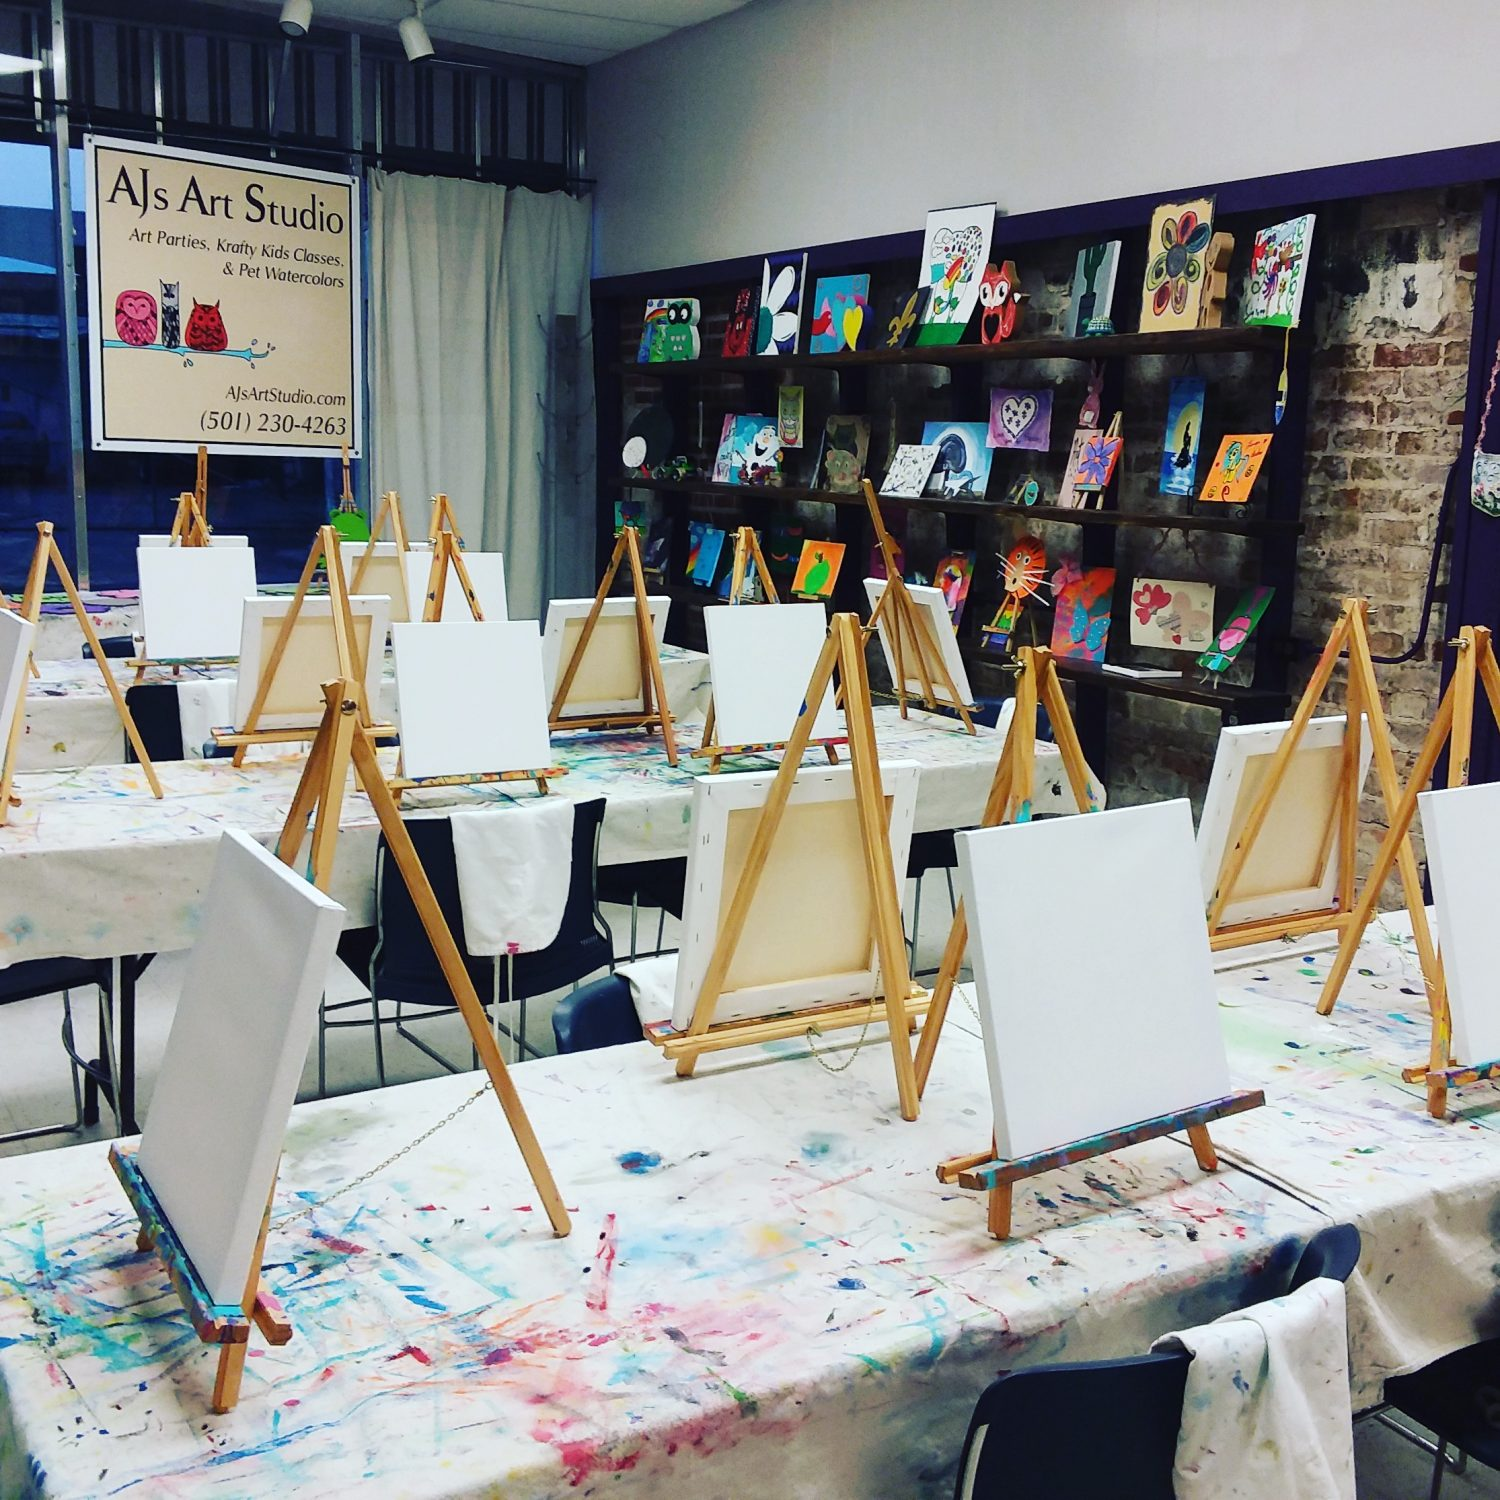 learn how to paint at AJs Art Studio